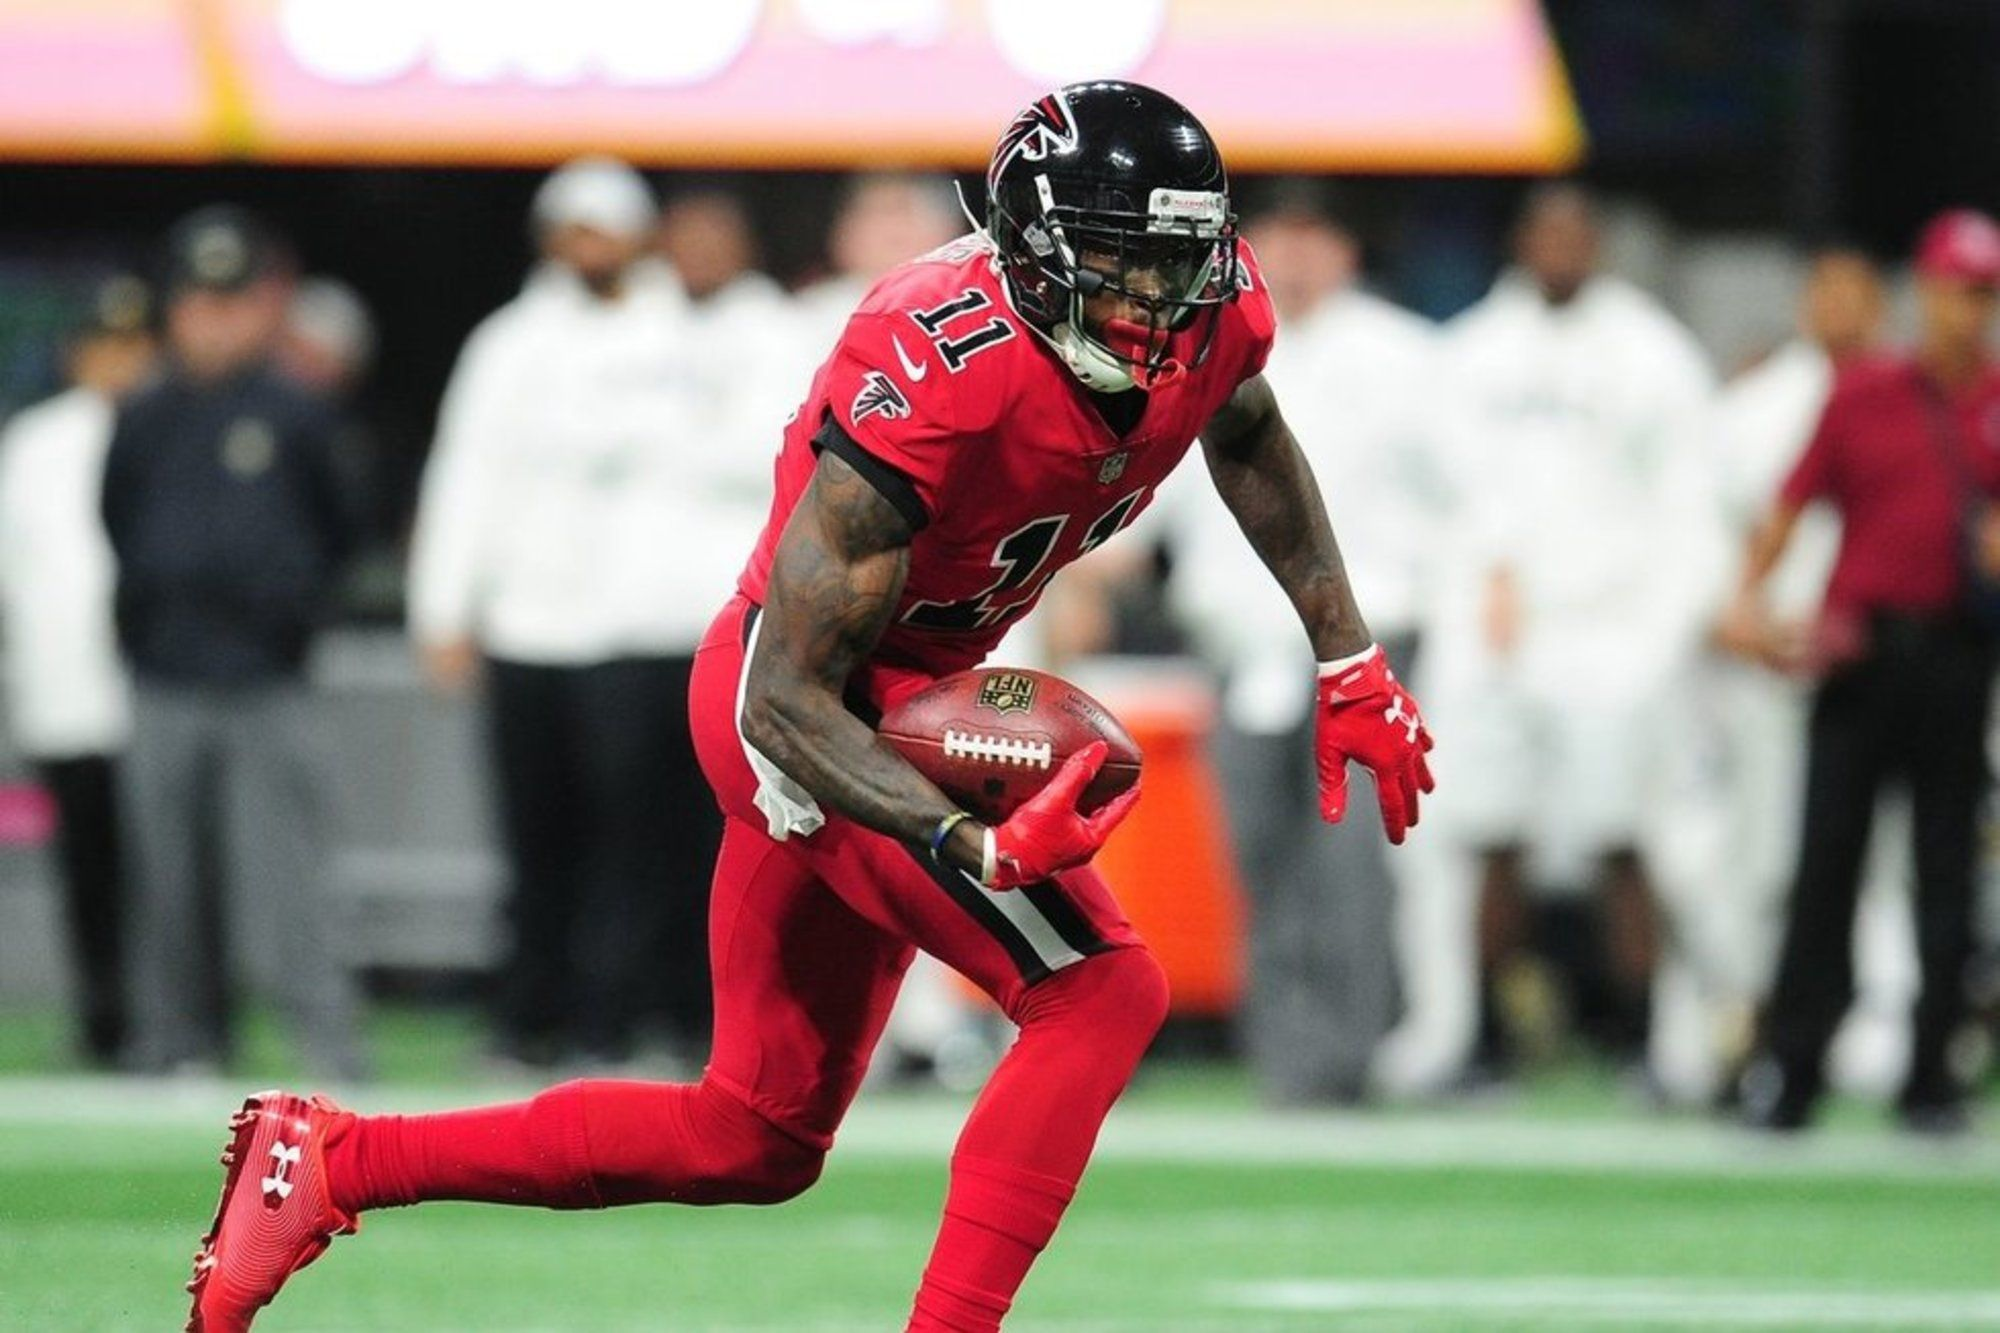 The Falcons Will Make The Nflnplayoffs This Year Thanks To New Defensive Success And Momentum From Wins Julio Jones Atlanta Falcons Julio Jones Falcons